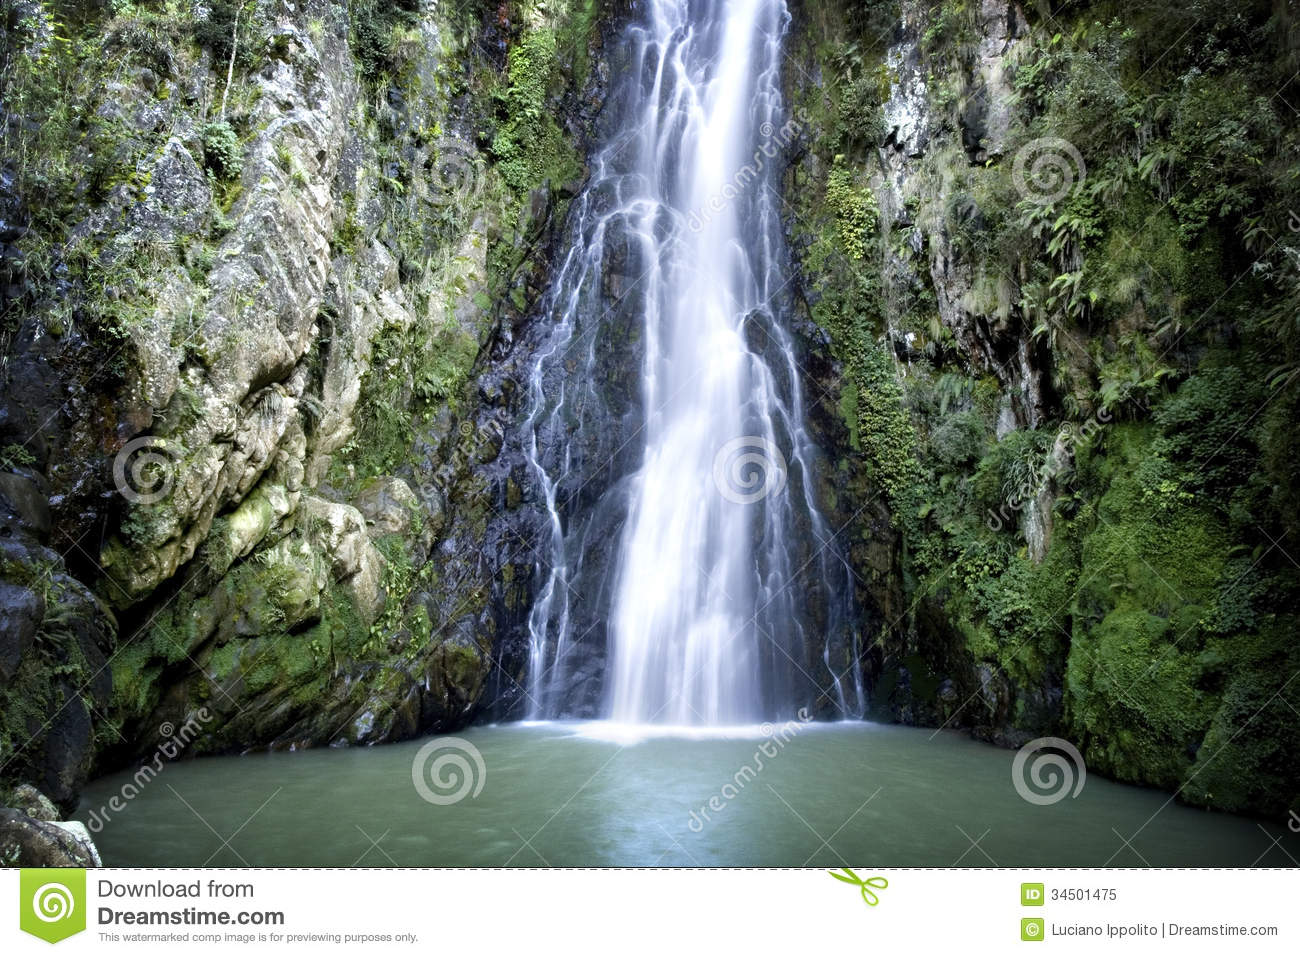 Aguas Blancas Waterfall Royalty Free Stock Photo Image 34501475